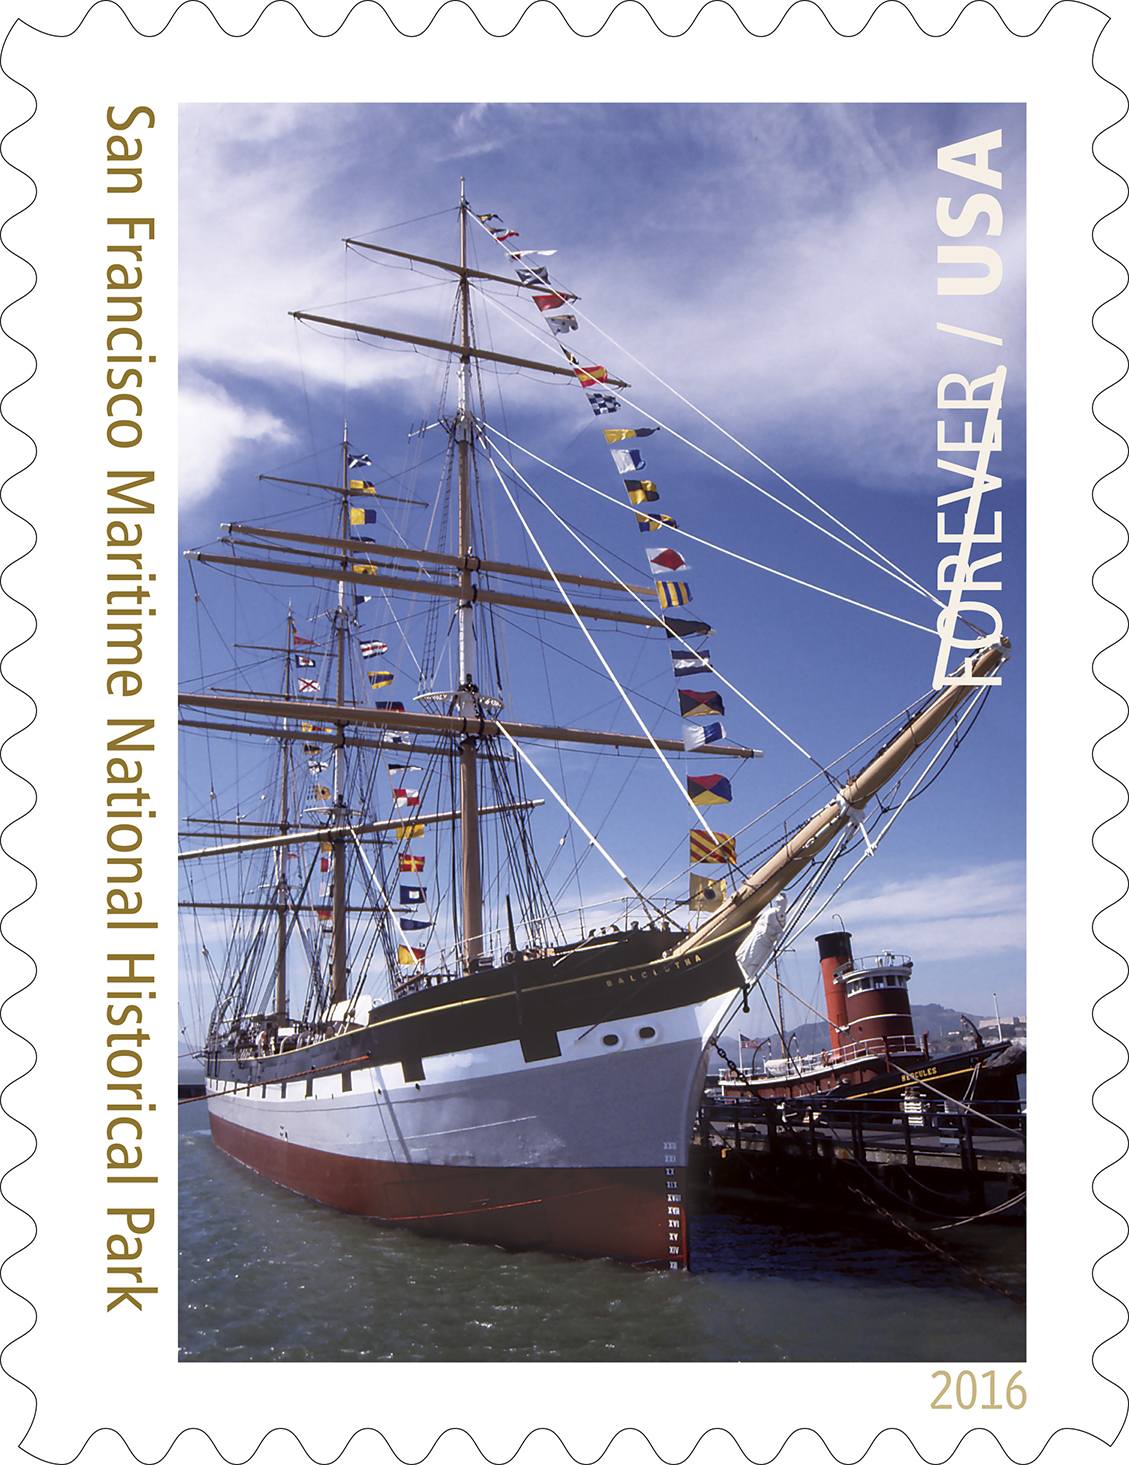 Stamp image: Balclutha, San Francisco Maritime National Historical Park